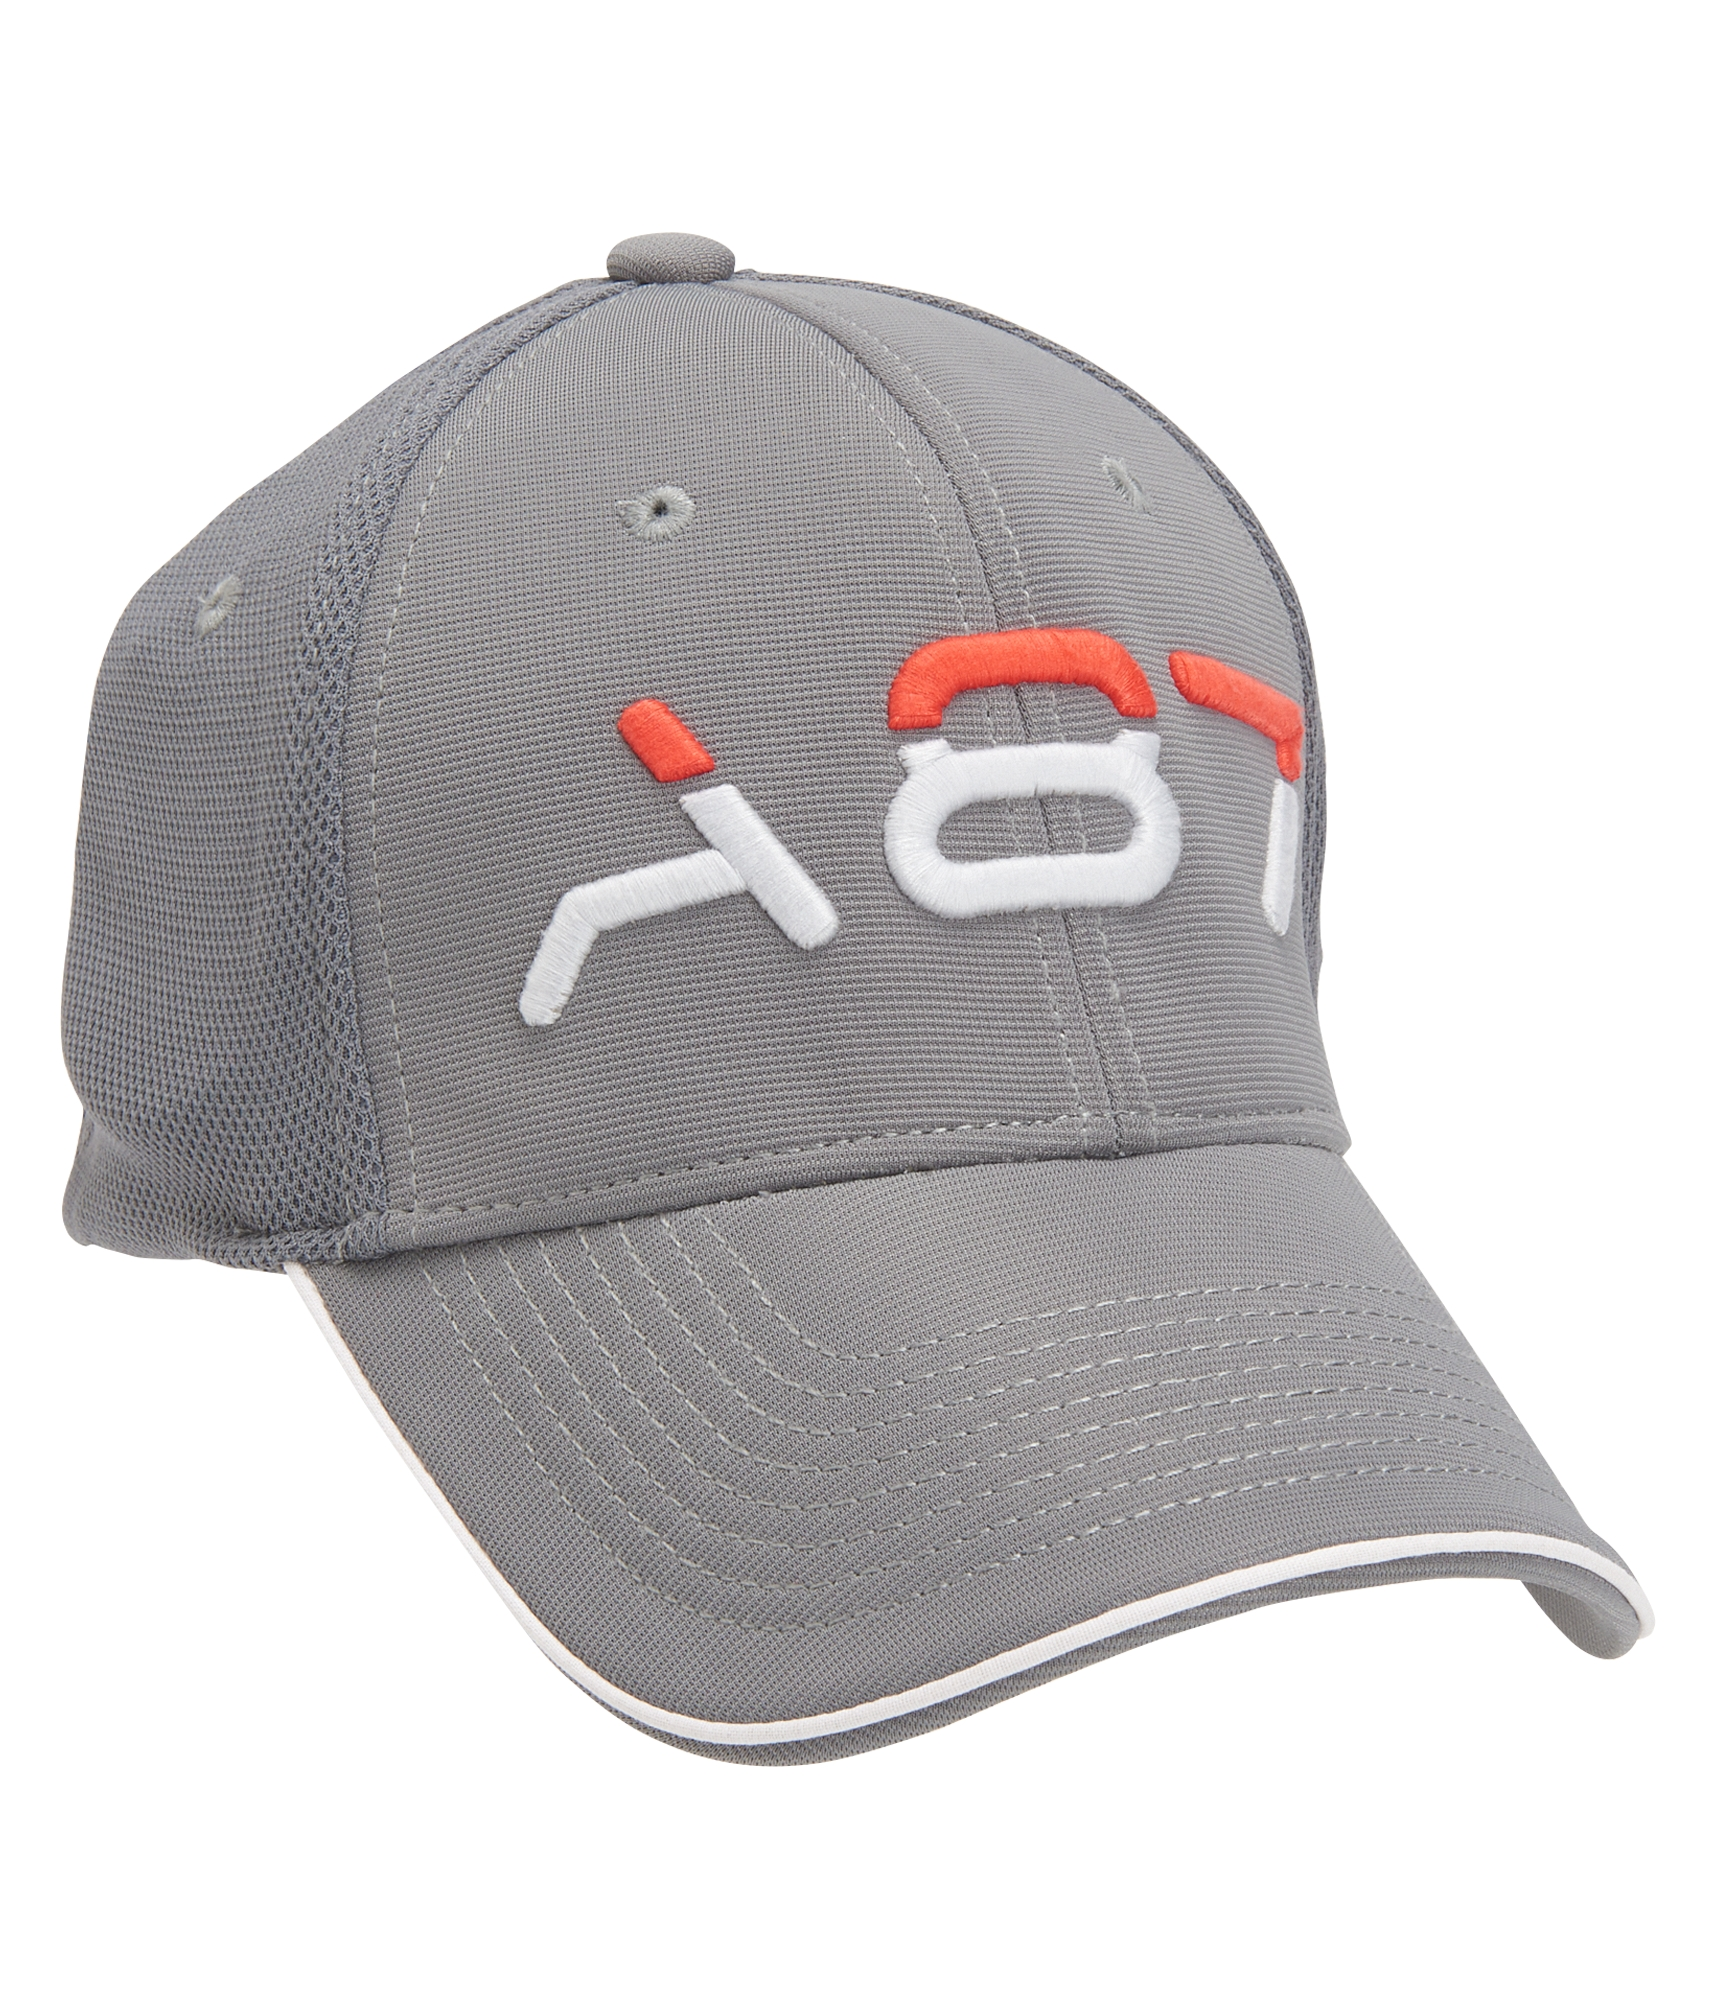 Aeropostale A87 Performance Fitted Hat - Dark Grey, S/M